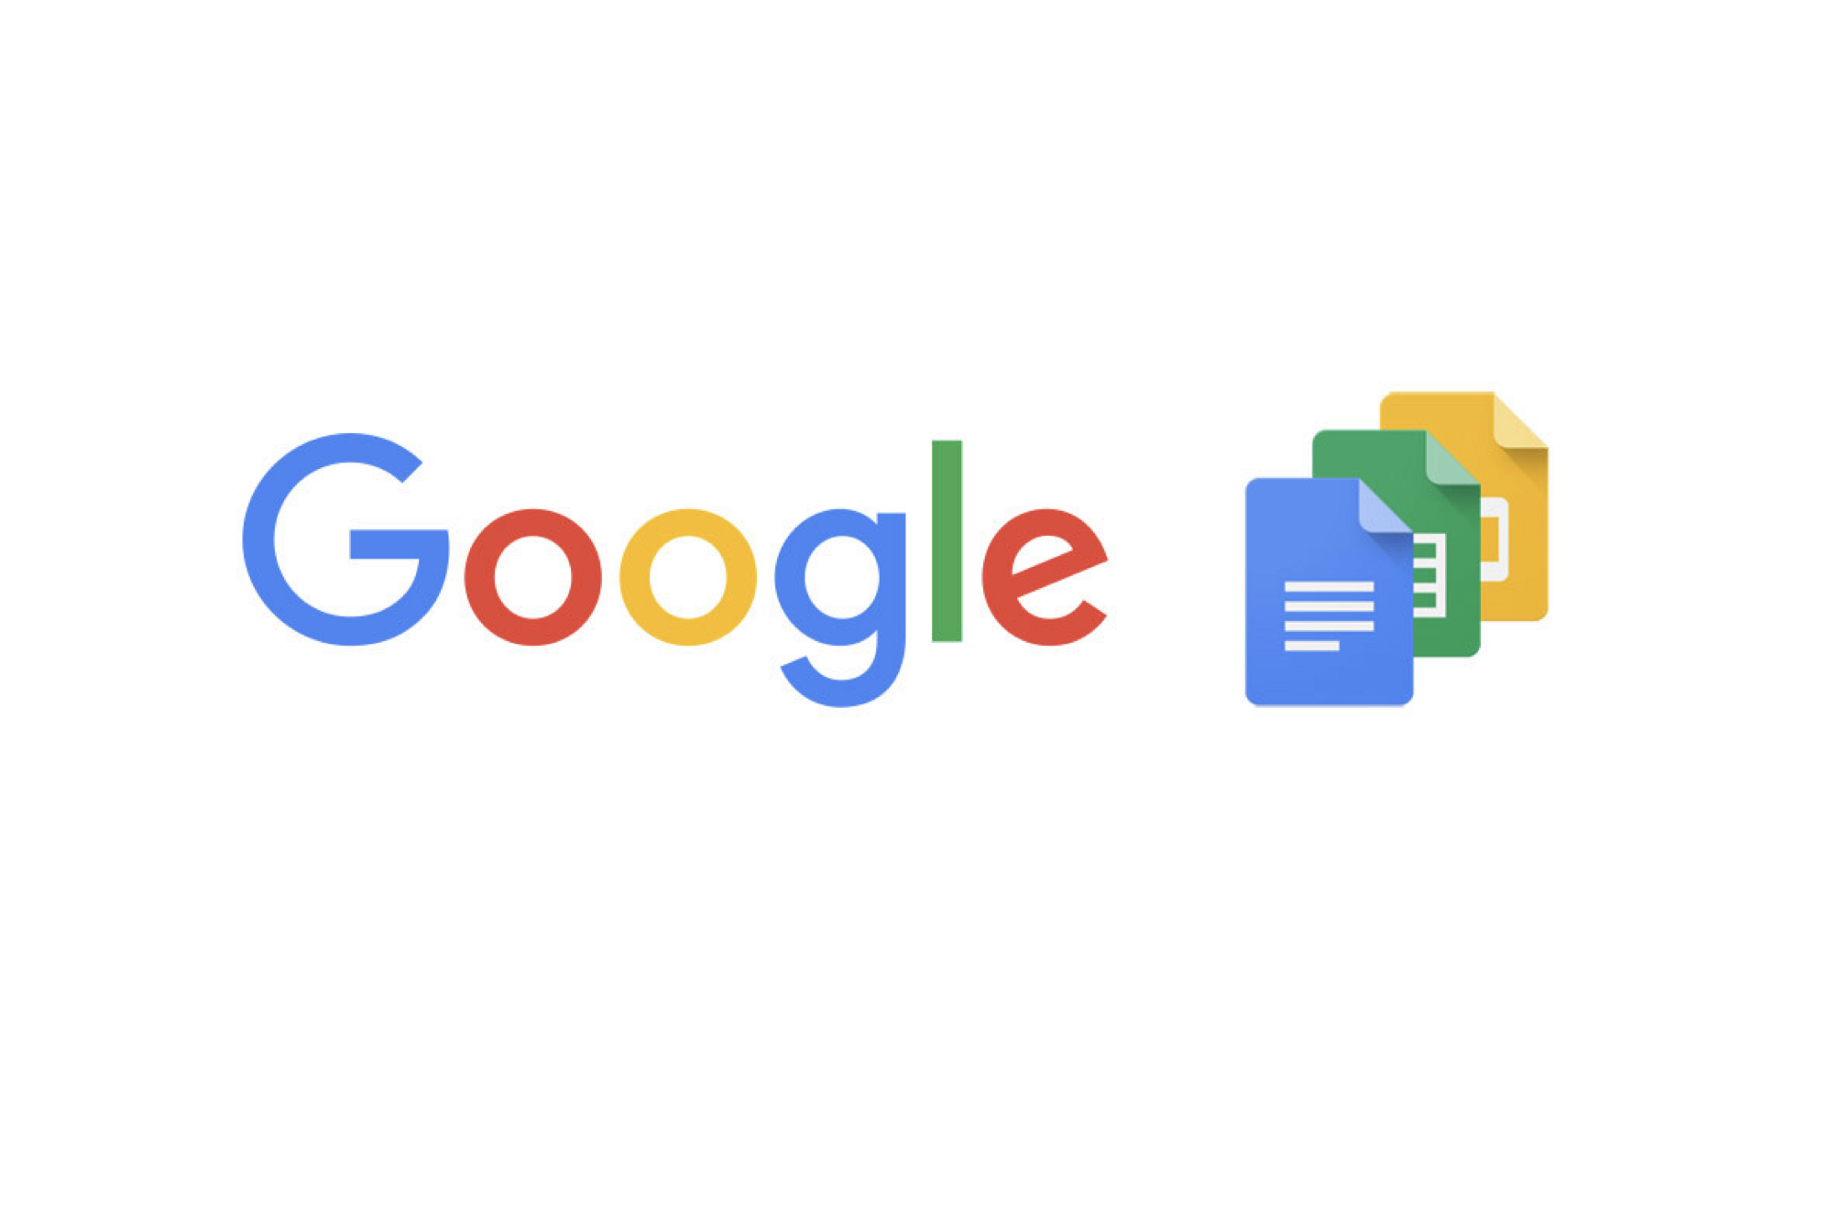 We moved our Mobile UI Design from Sketch to Google Docs, and here's